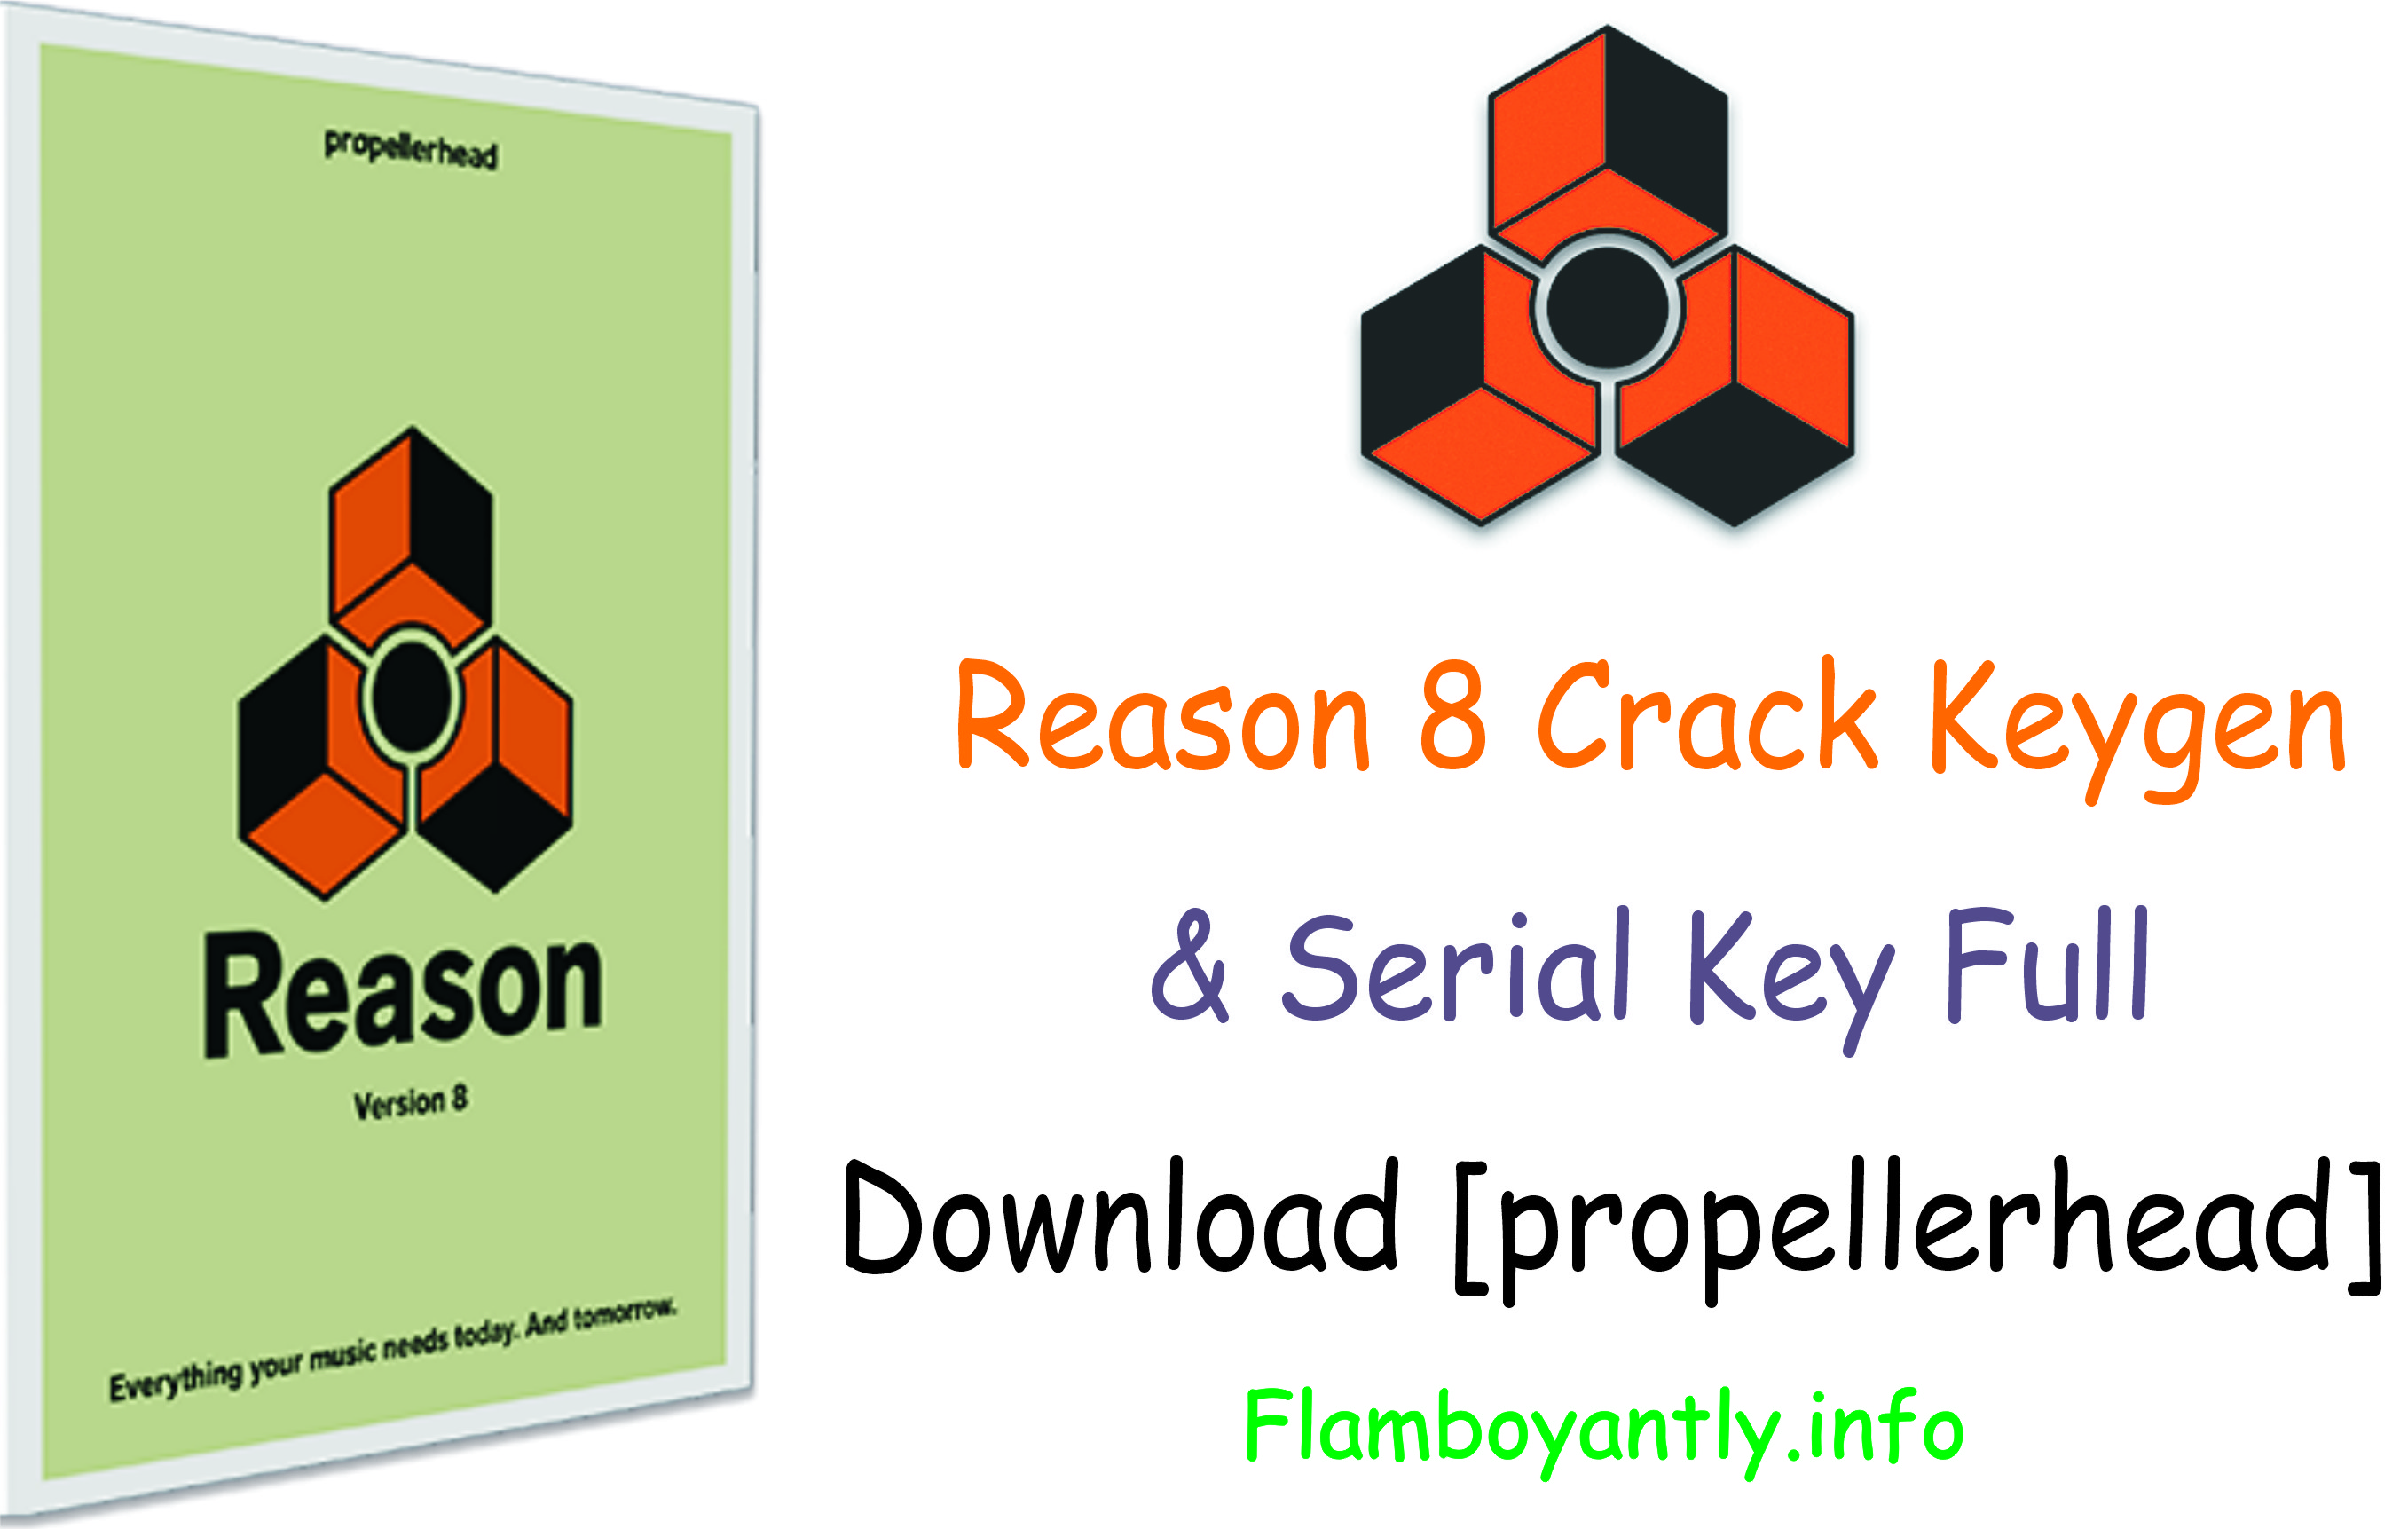 Reason 8 Crack Keygen & Serial Key Full Download [propellerhead]